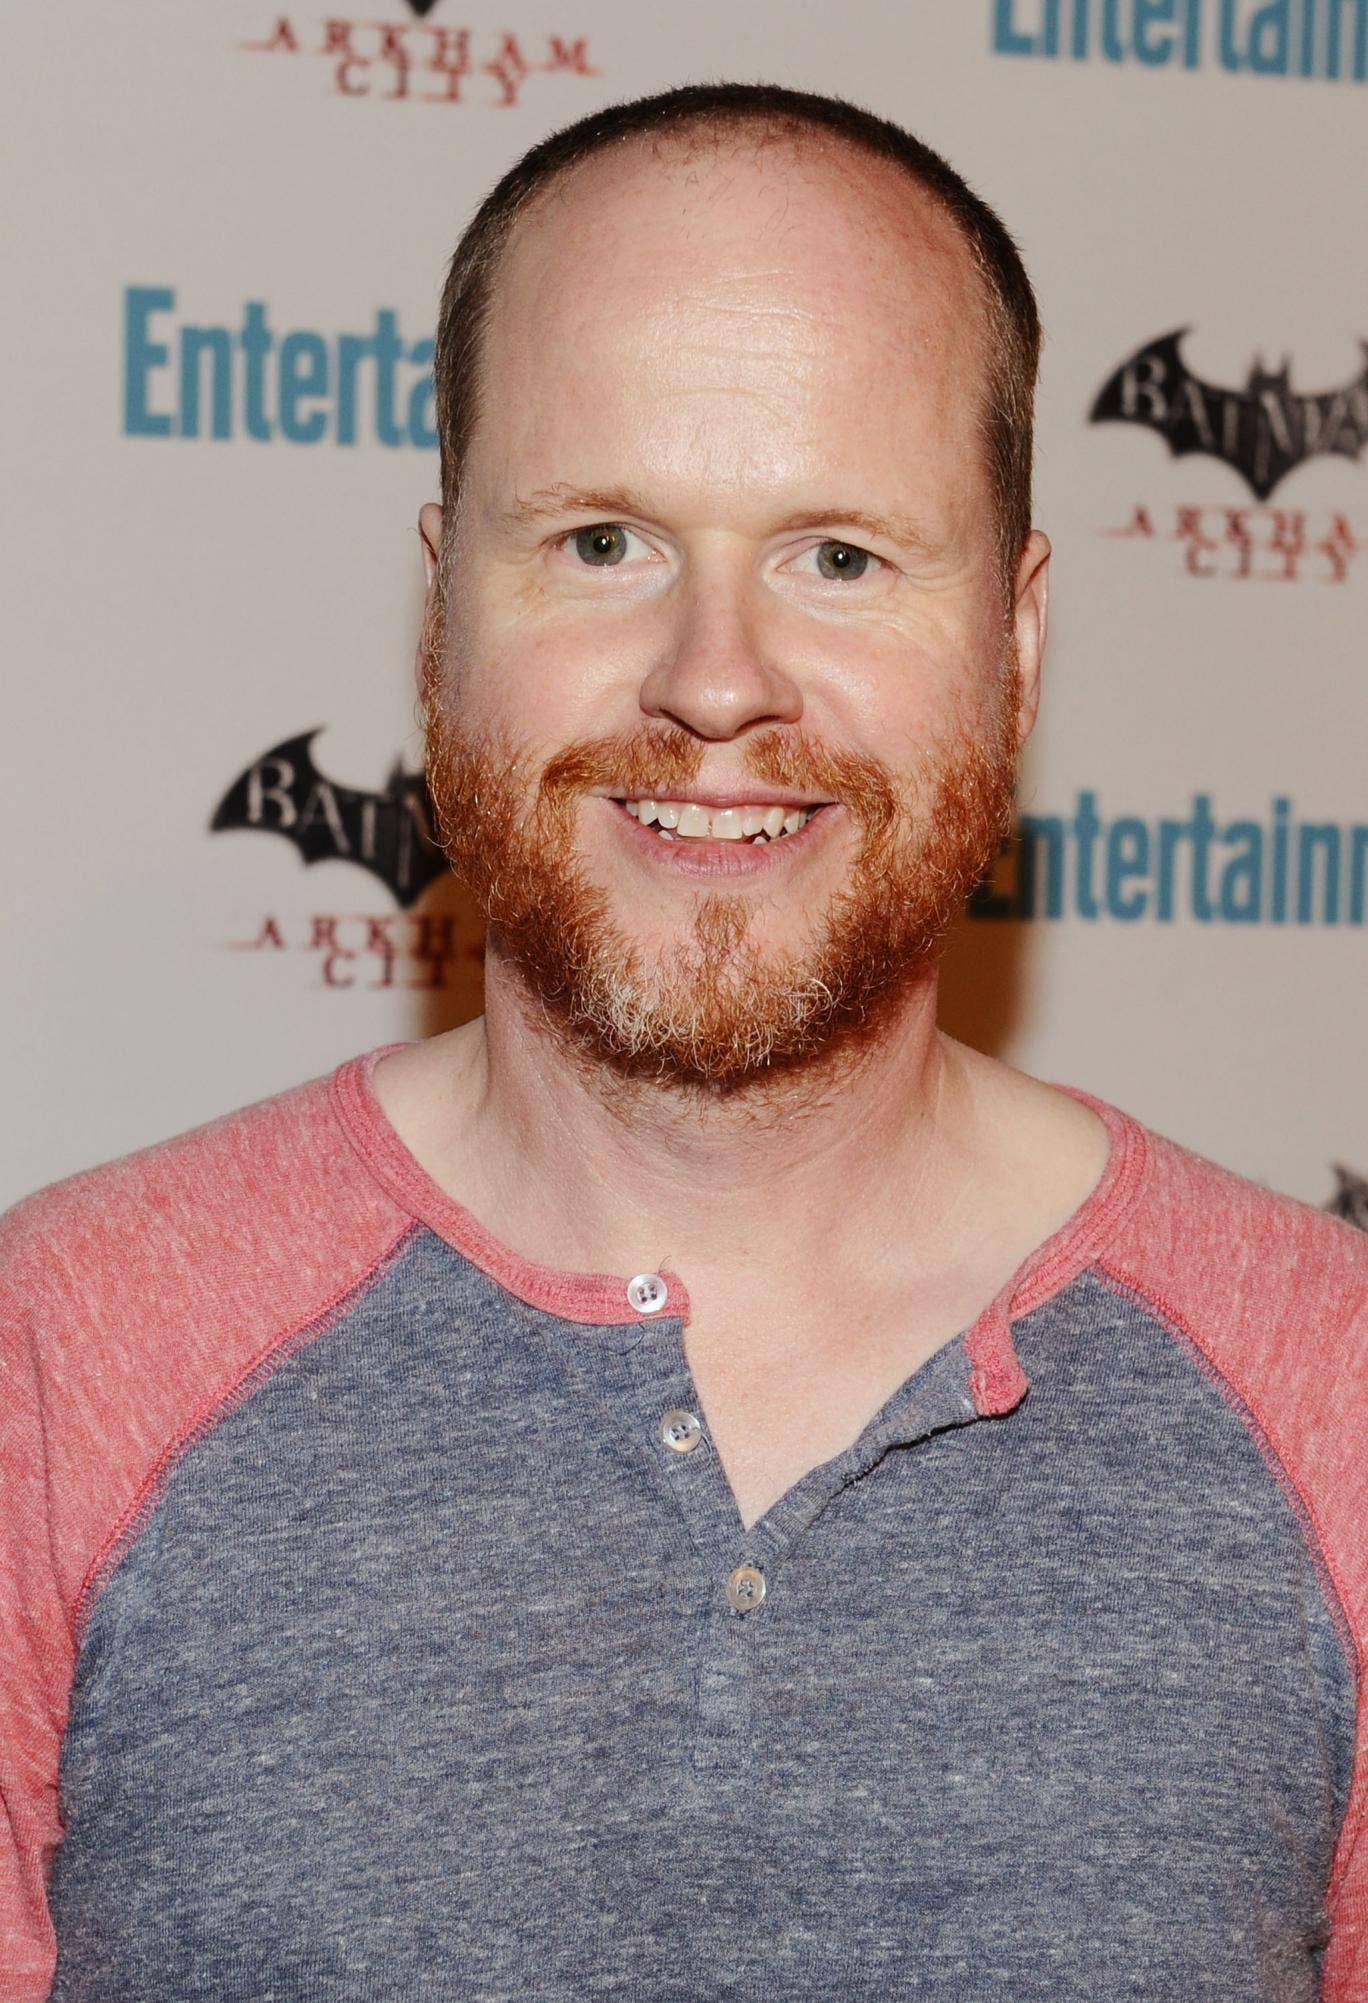 Joss Whedon, the creator of Buffy, has directed the spin-off